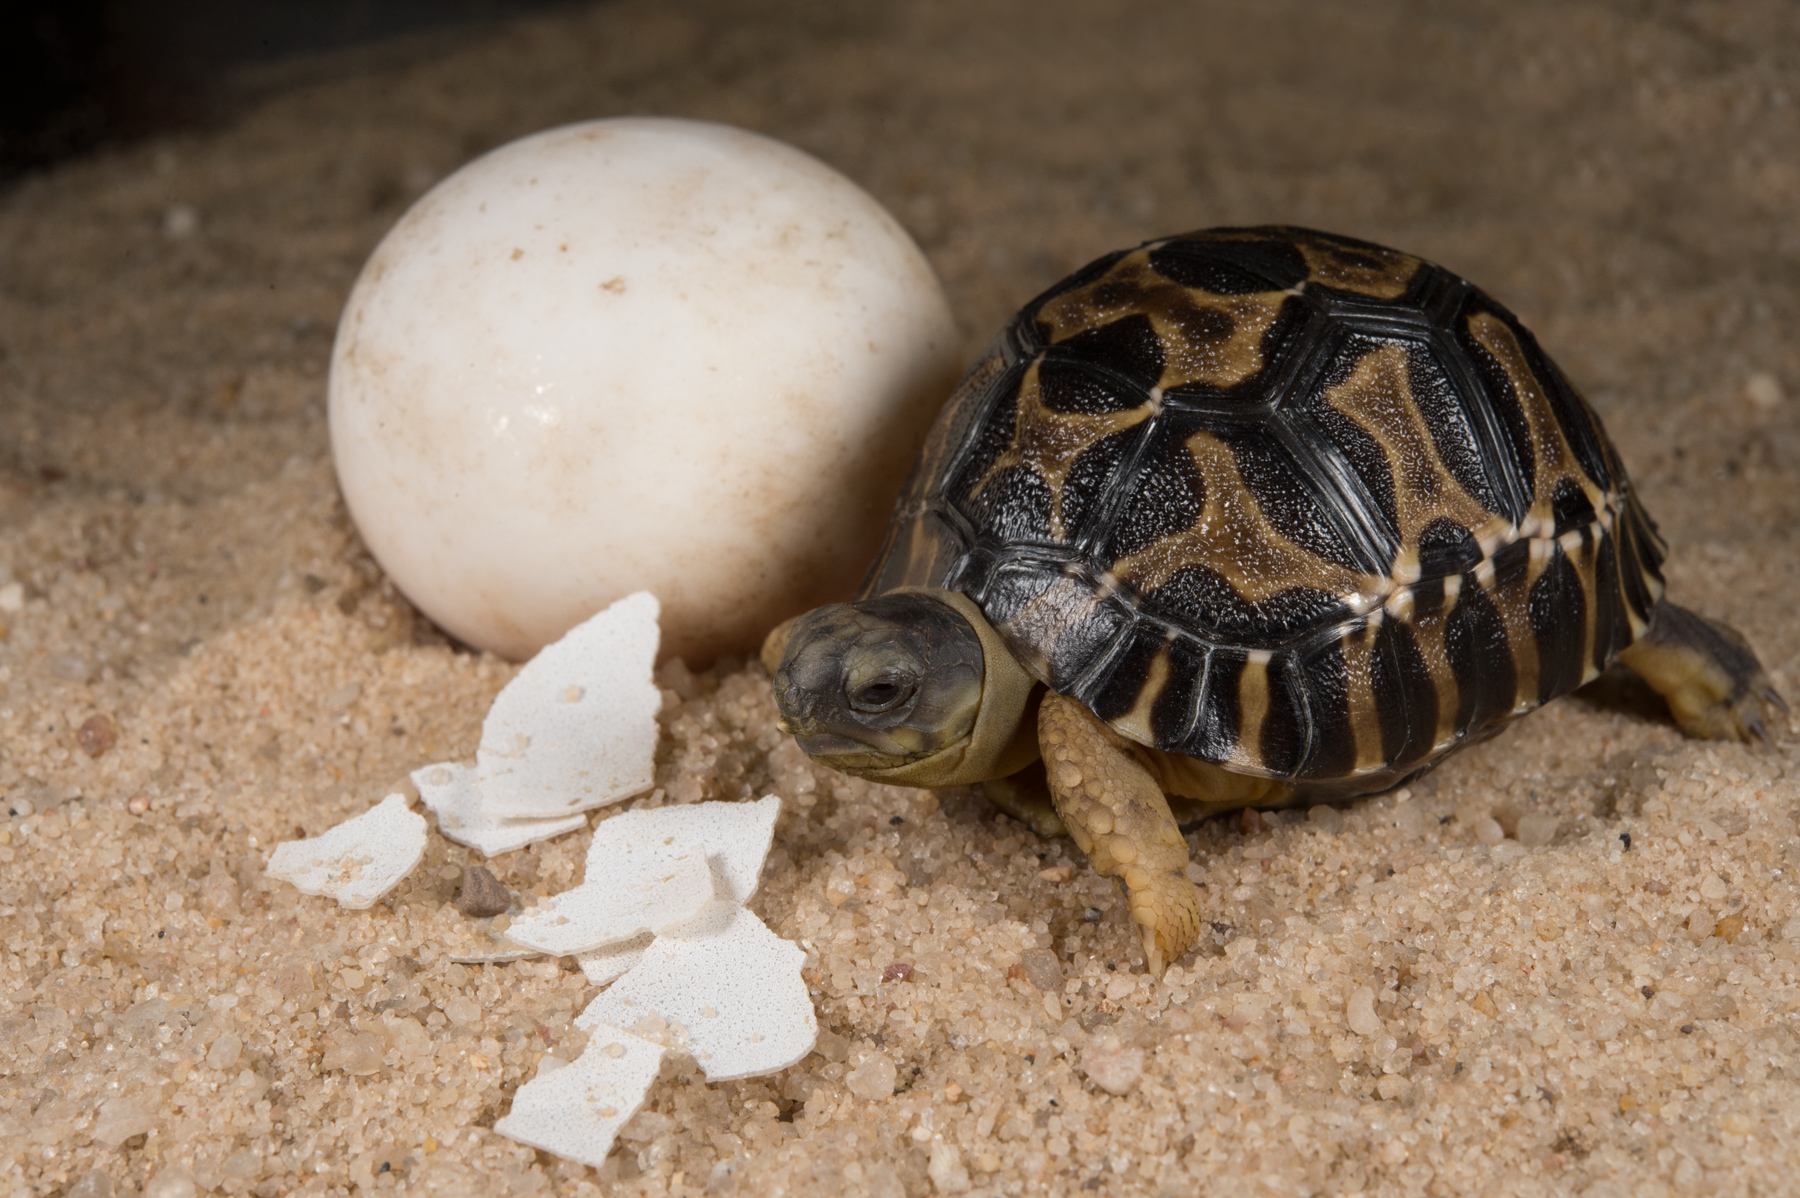 Baby Photos Of 10 Of The World S Rarest Turtles From The Zoo Trying To Save Them